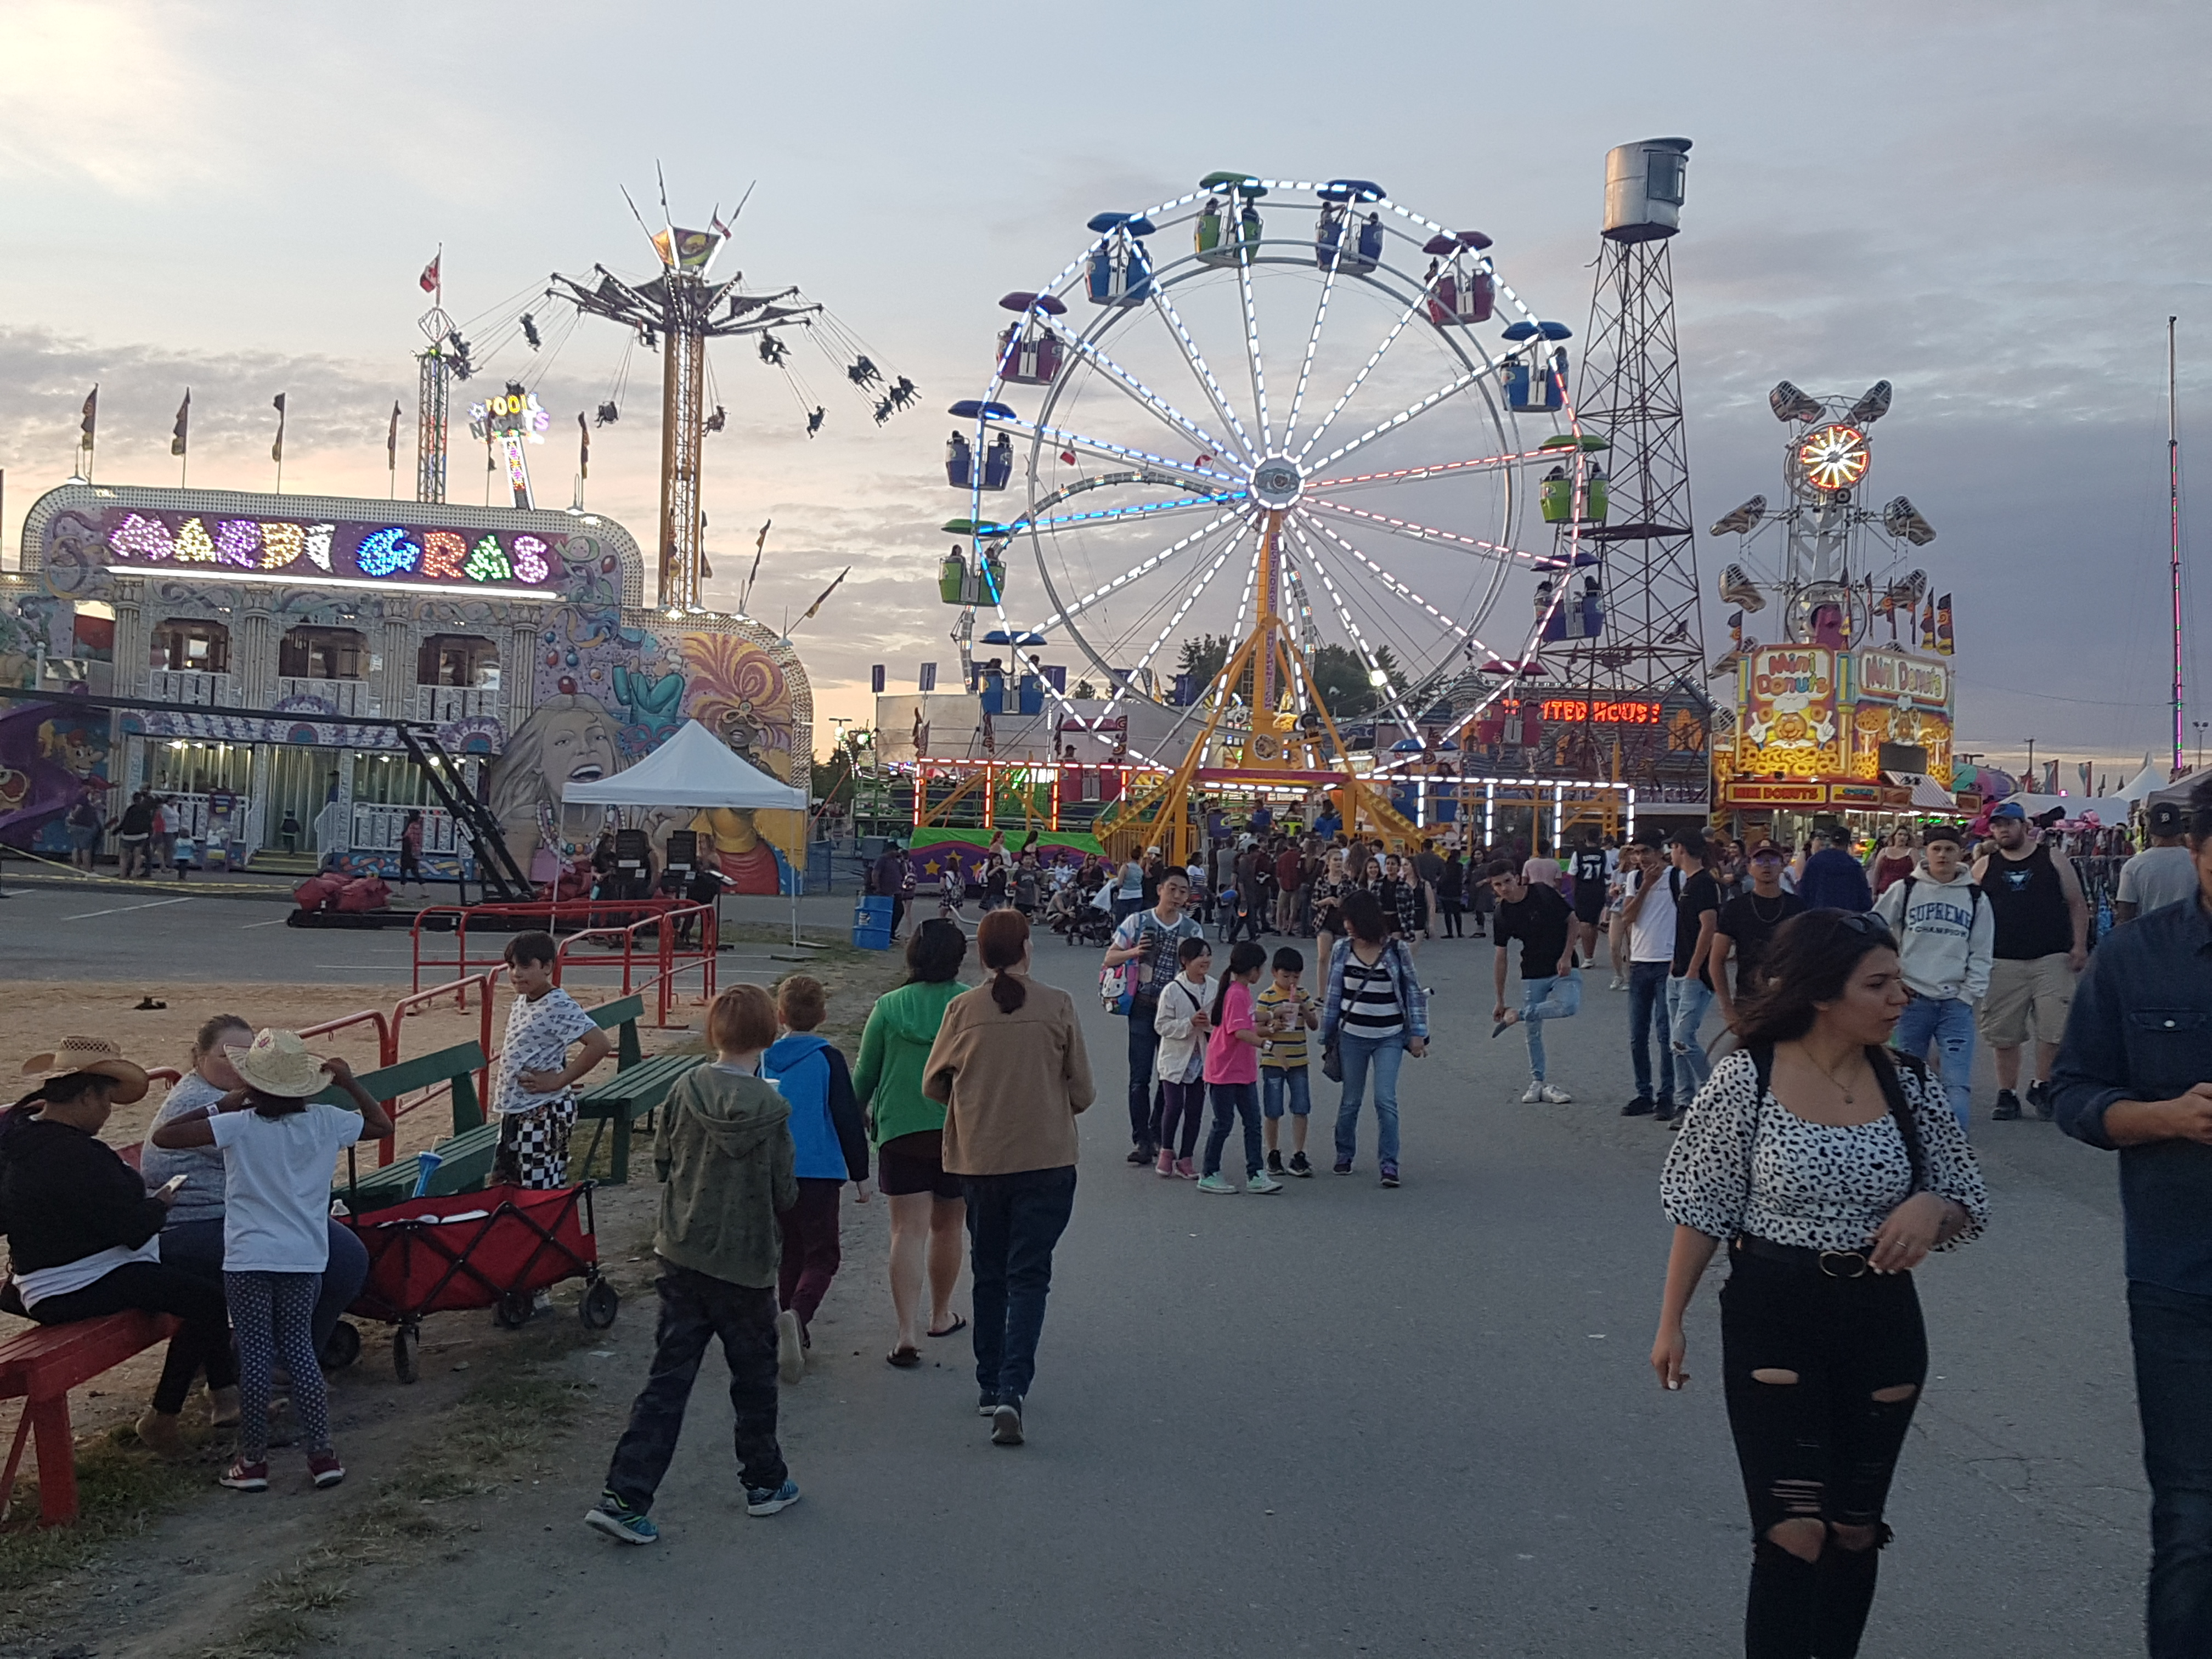 4-Day Rodeo & Country Fair Brings in Big Crowds in Cloverdale